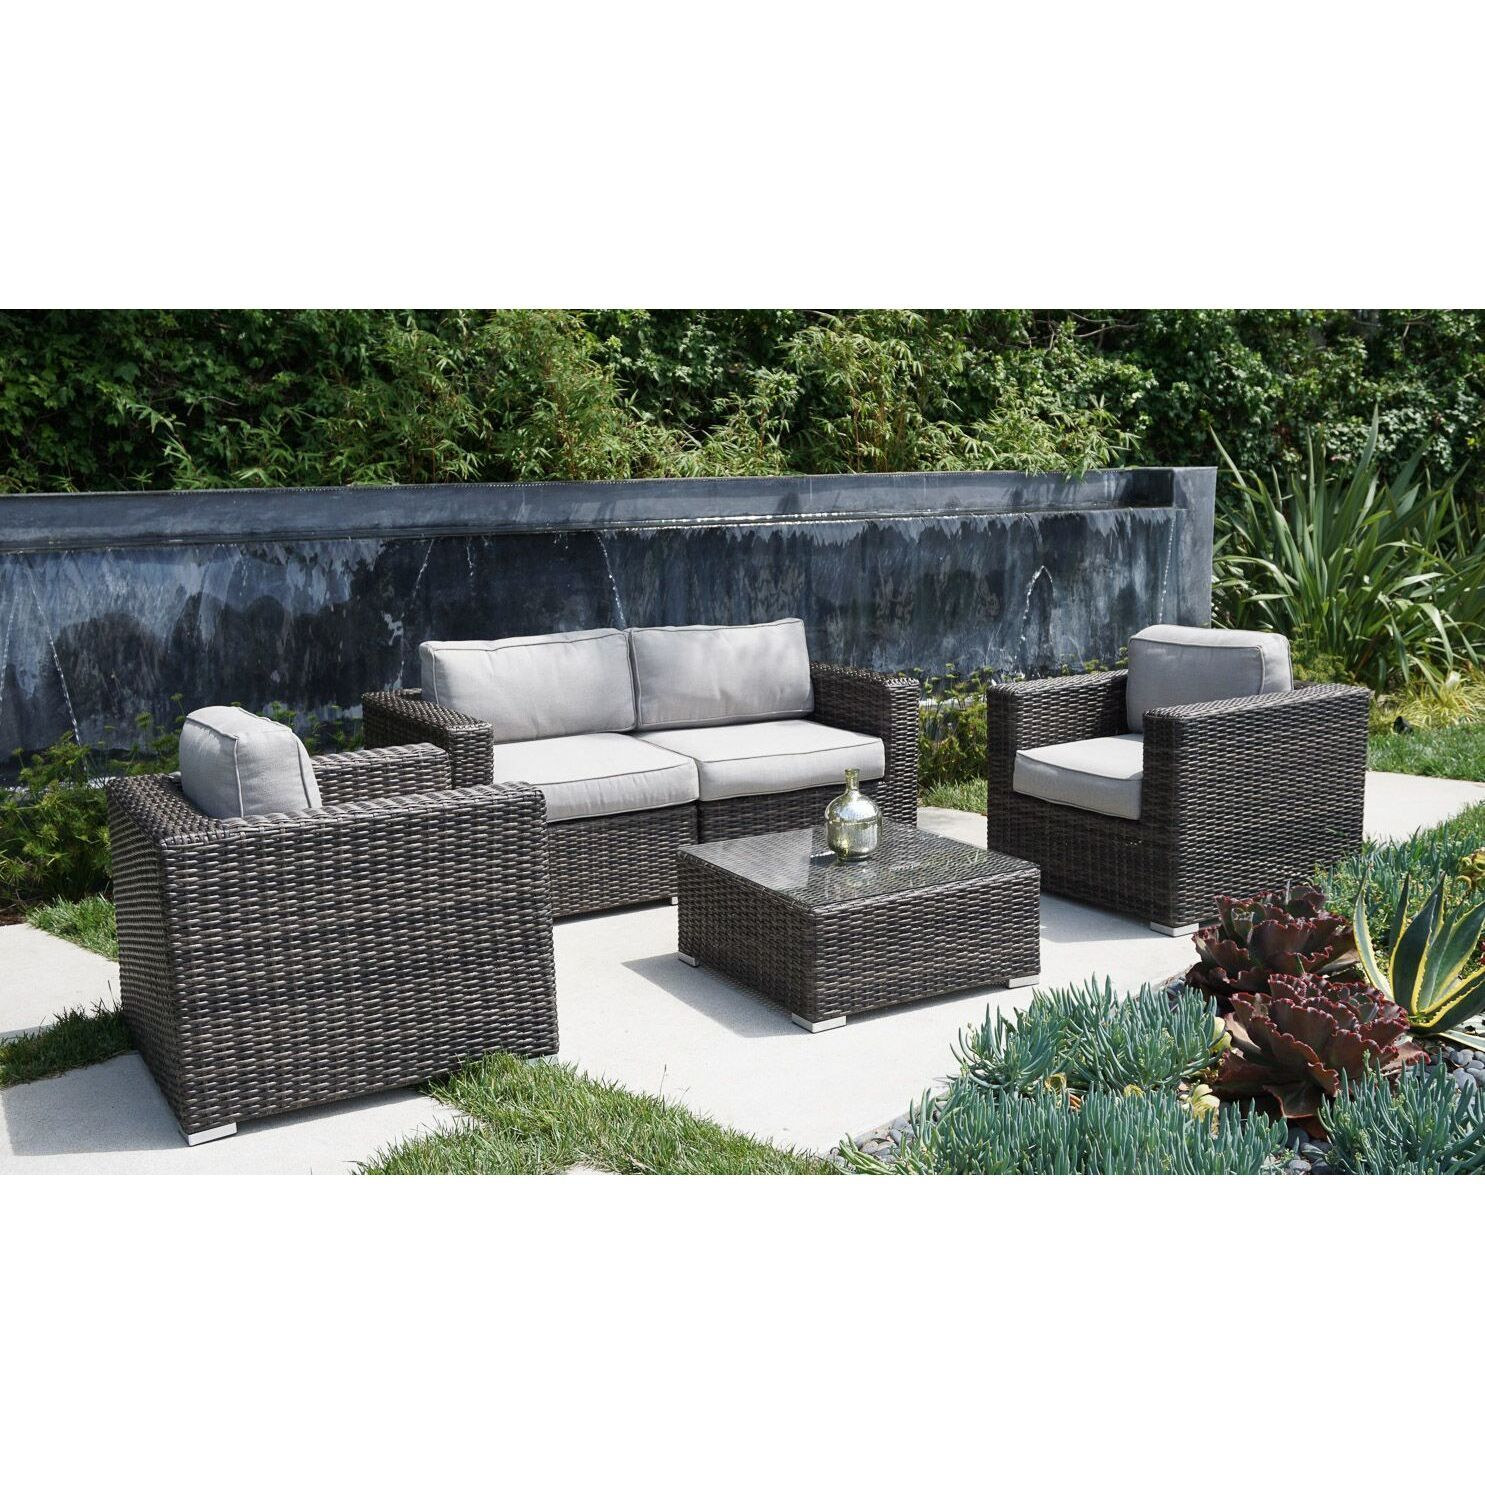 Nolen 5 Piece Rattan Sectional Set with Cushions